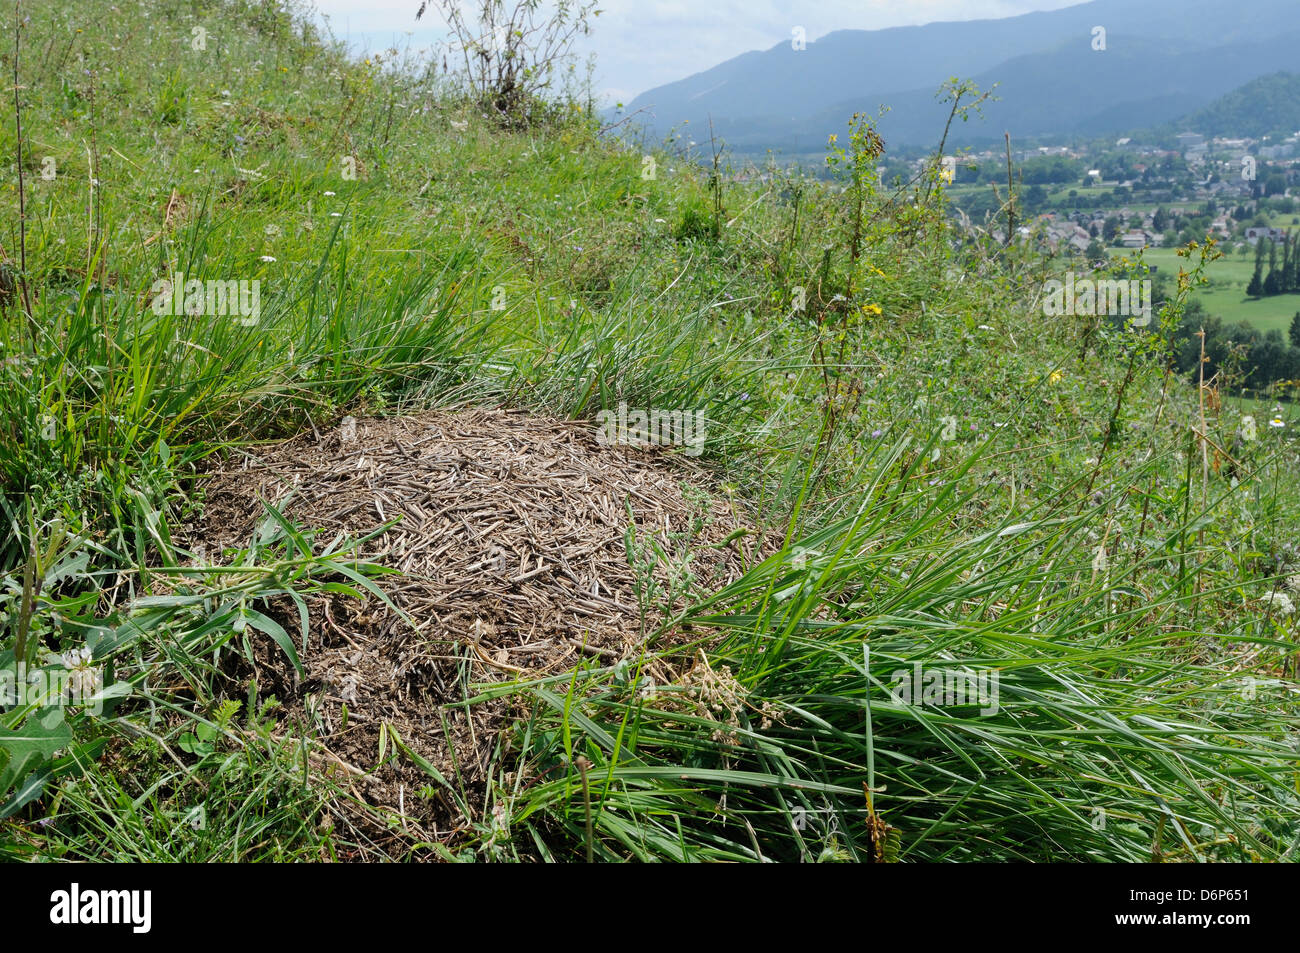 Black-backed meadow ant (Formica pratensis) nest mound of old grass stems in montane pastureland near Bled, Slovenia, Stock Photo